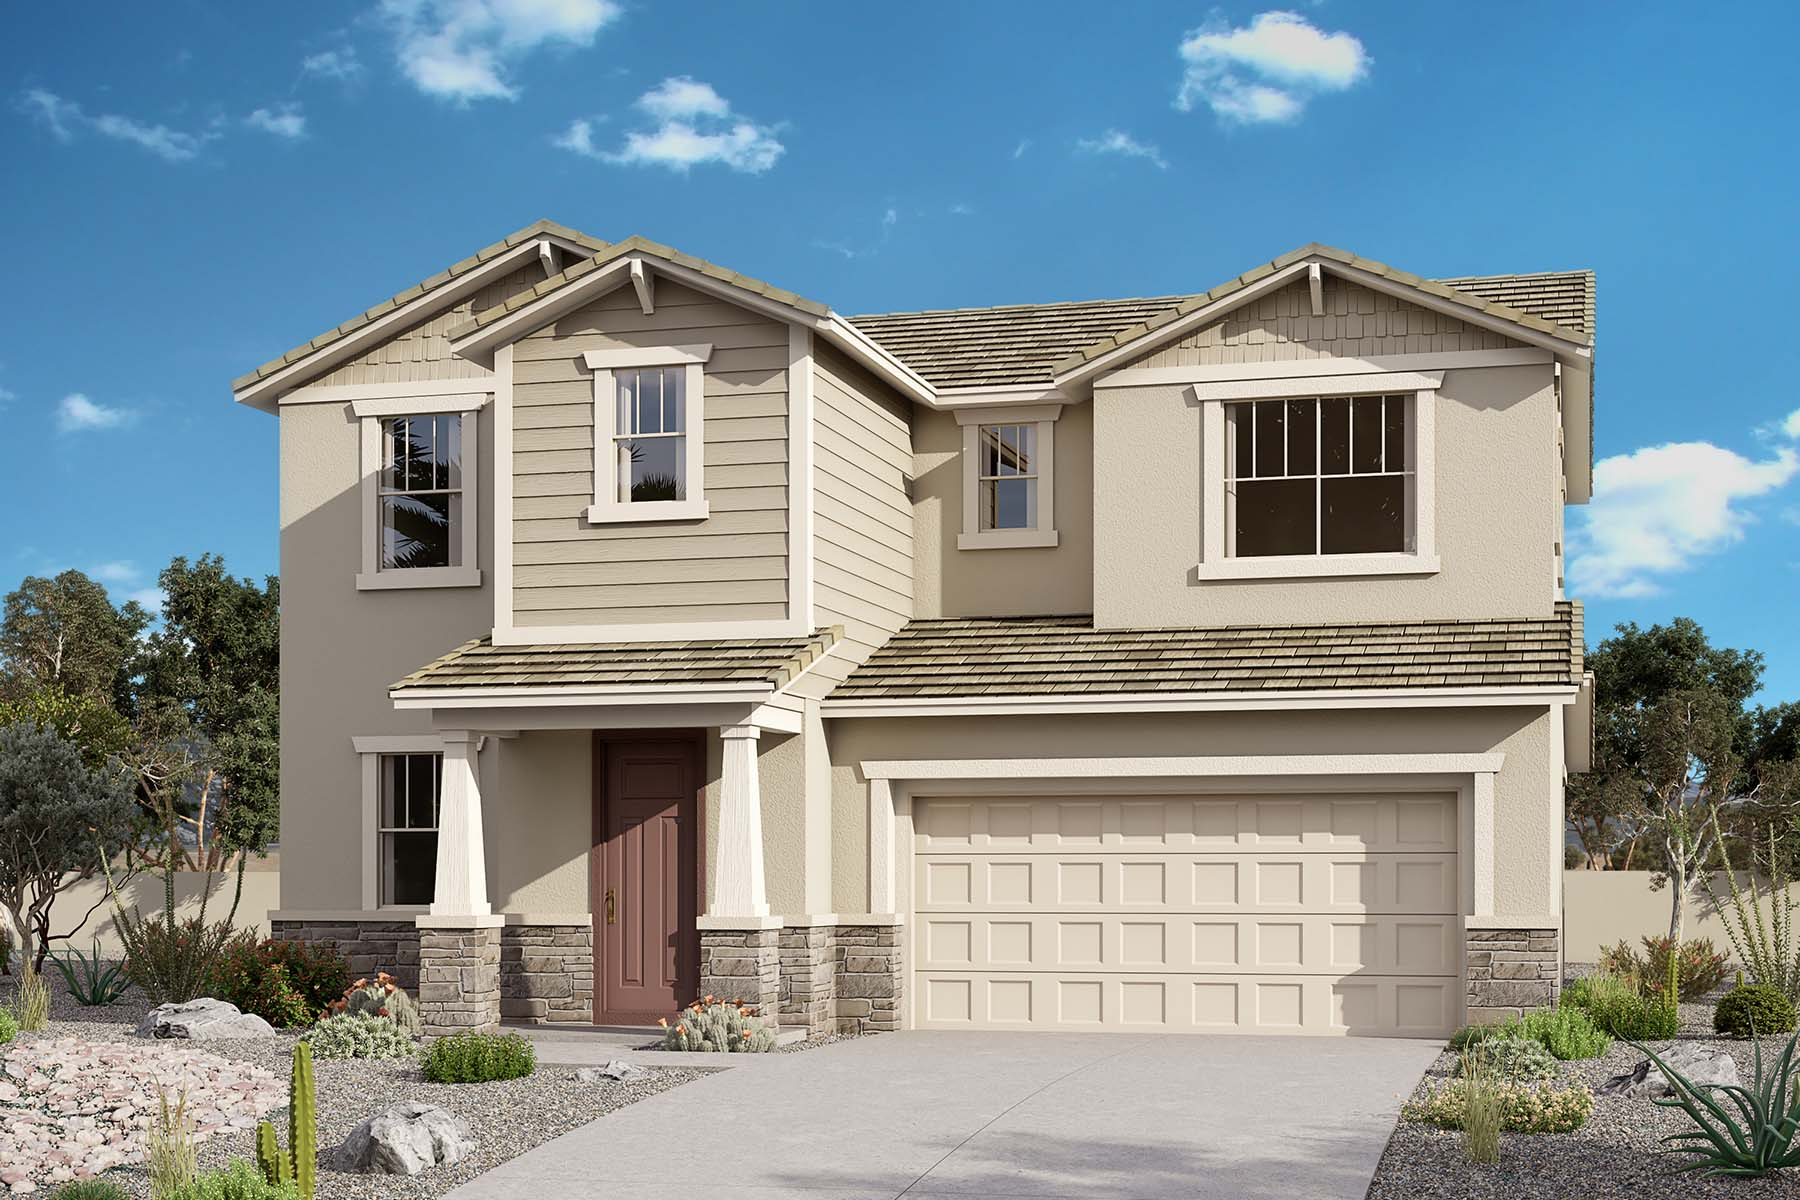 Marigold Plan Elevation Front at Brookside at Arroyo Seco in Buckeye Arizona by Mattamy Homes